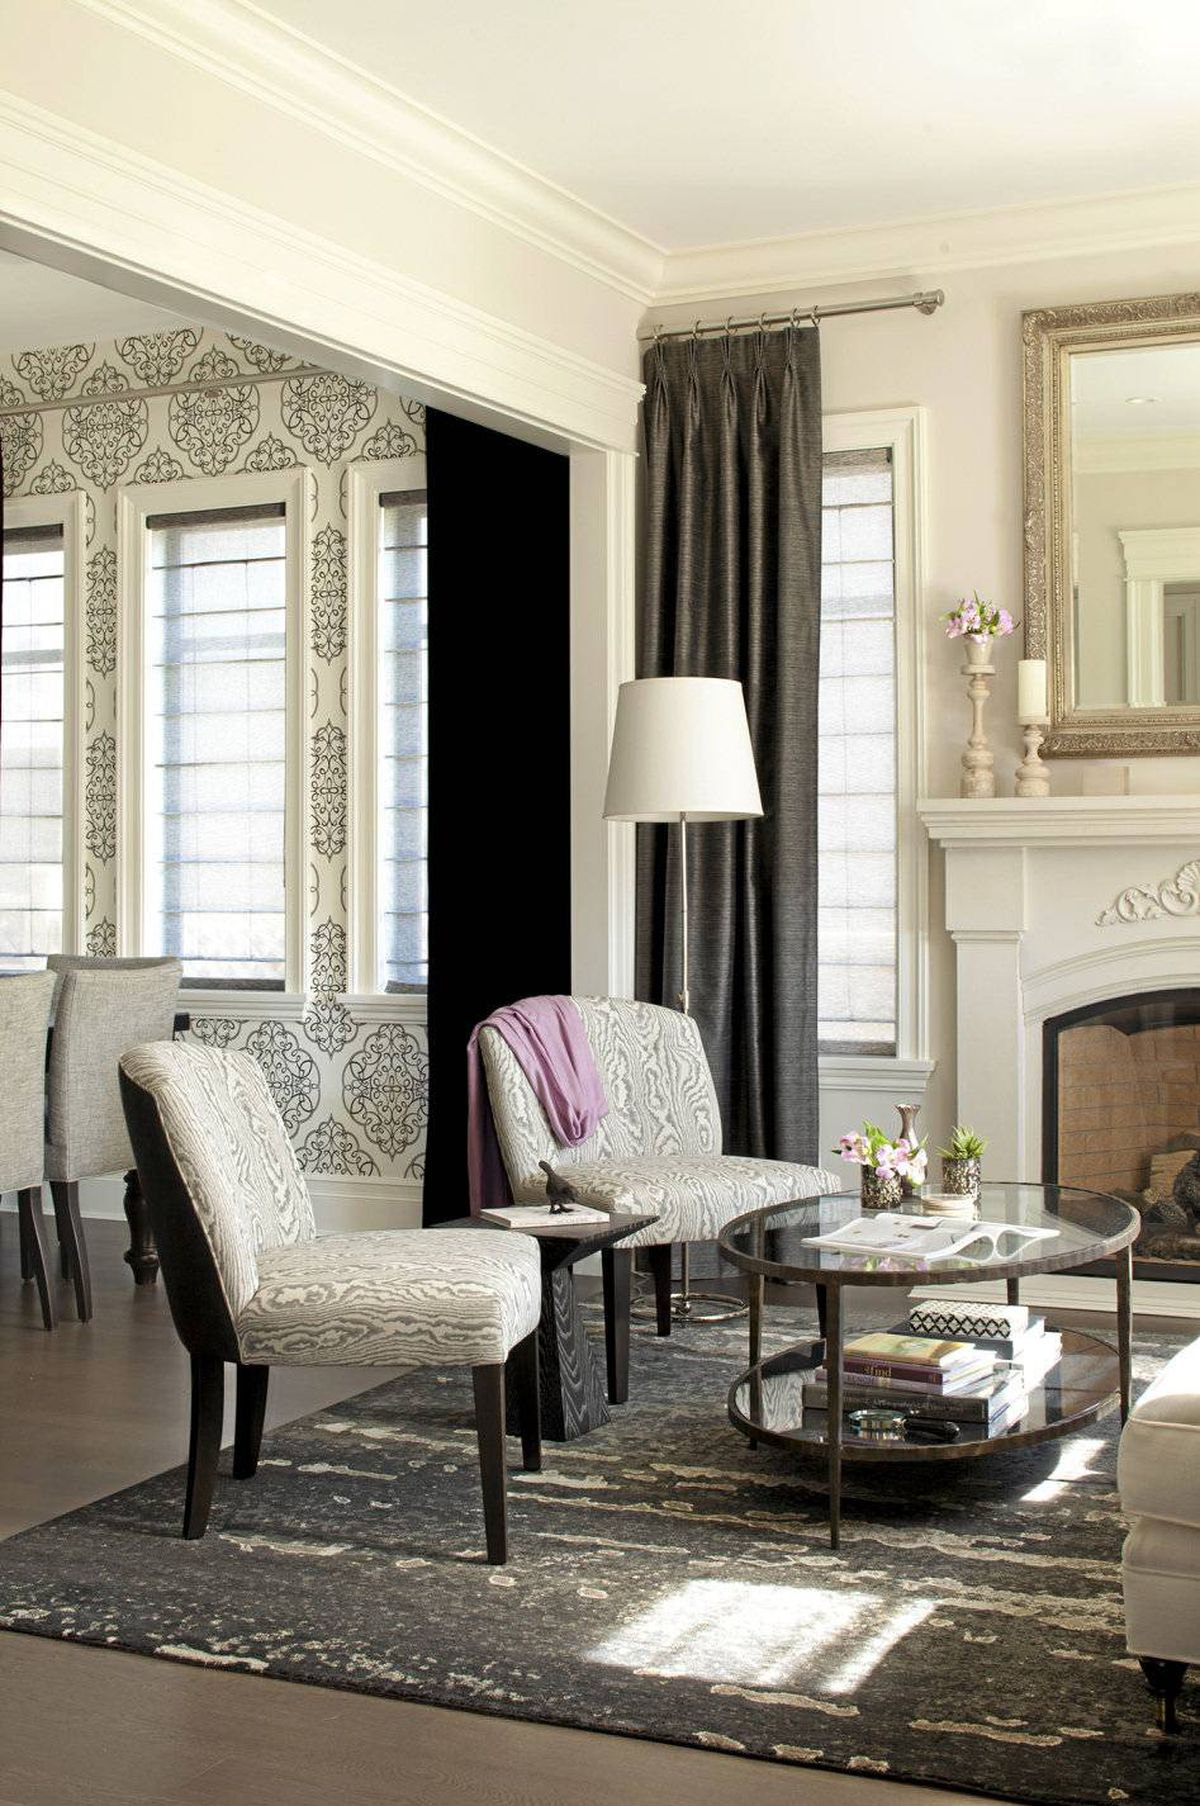 Identical, custom-built slipper chairs, upholstered in grey and white on the front side, and midnight linen on the black. From the living room, the pattern on the chairs adds visual intrigue to the space.